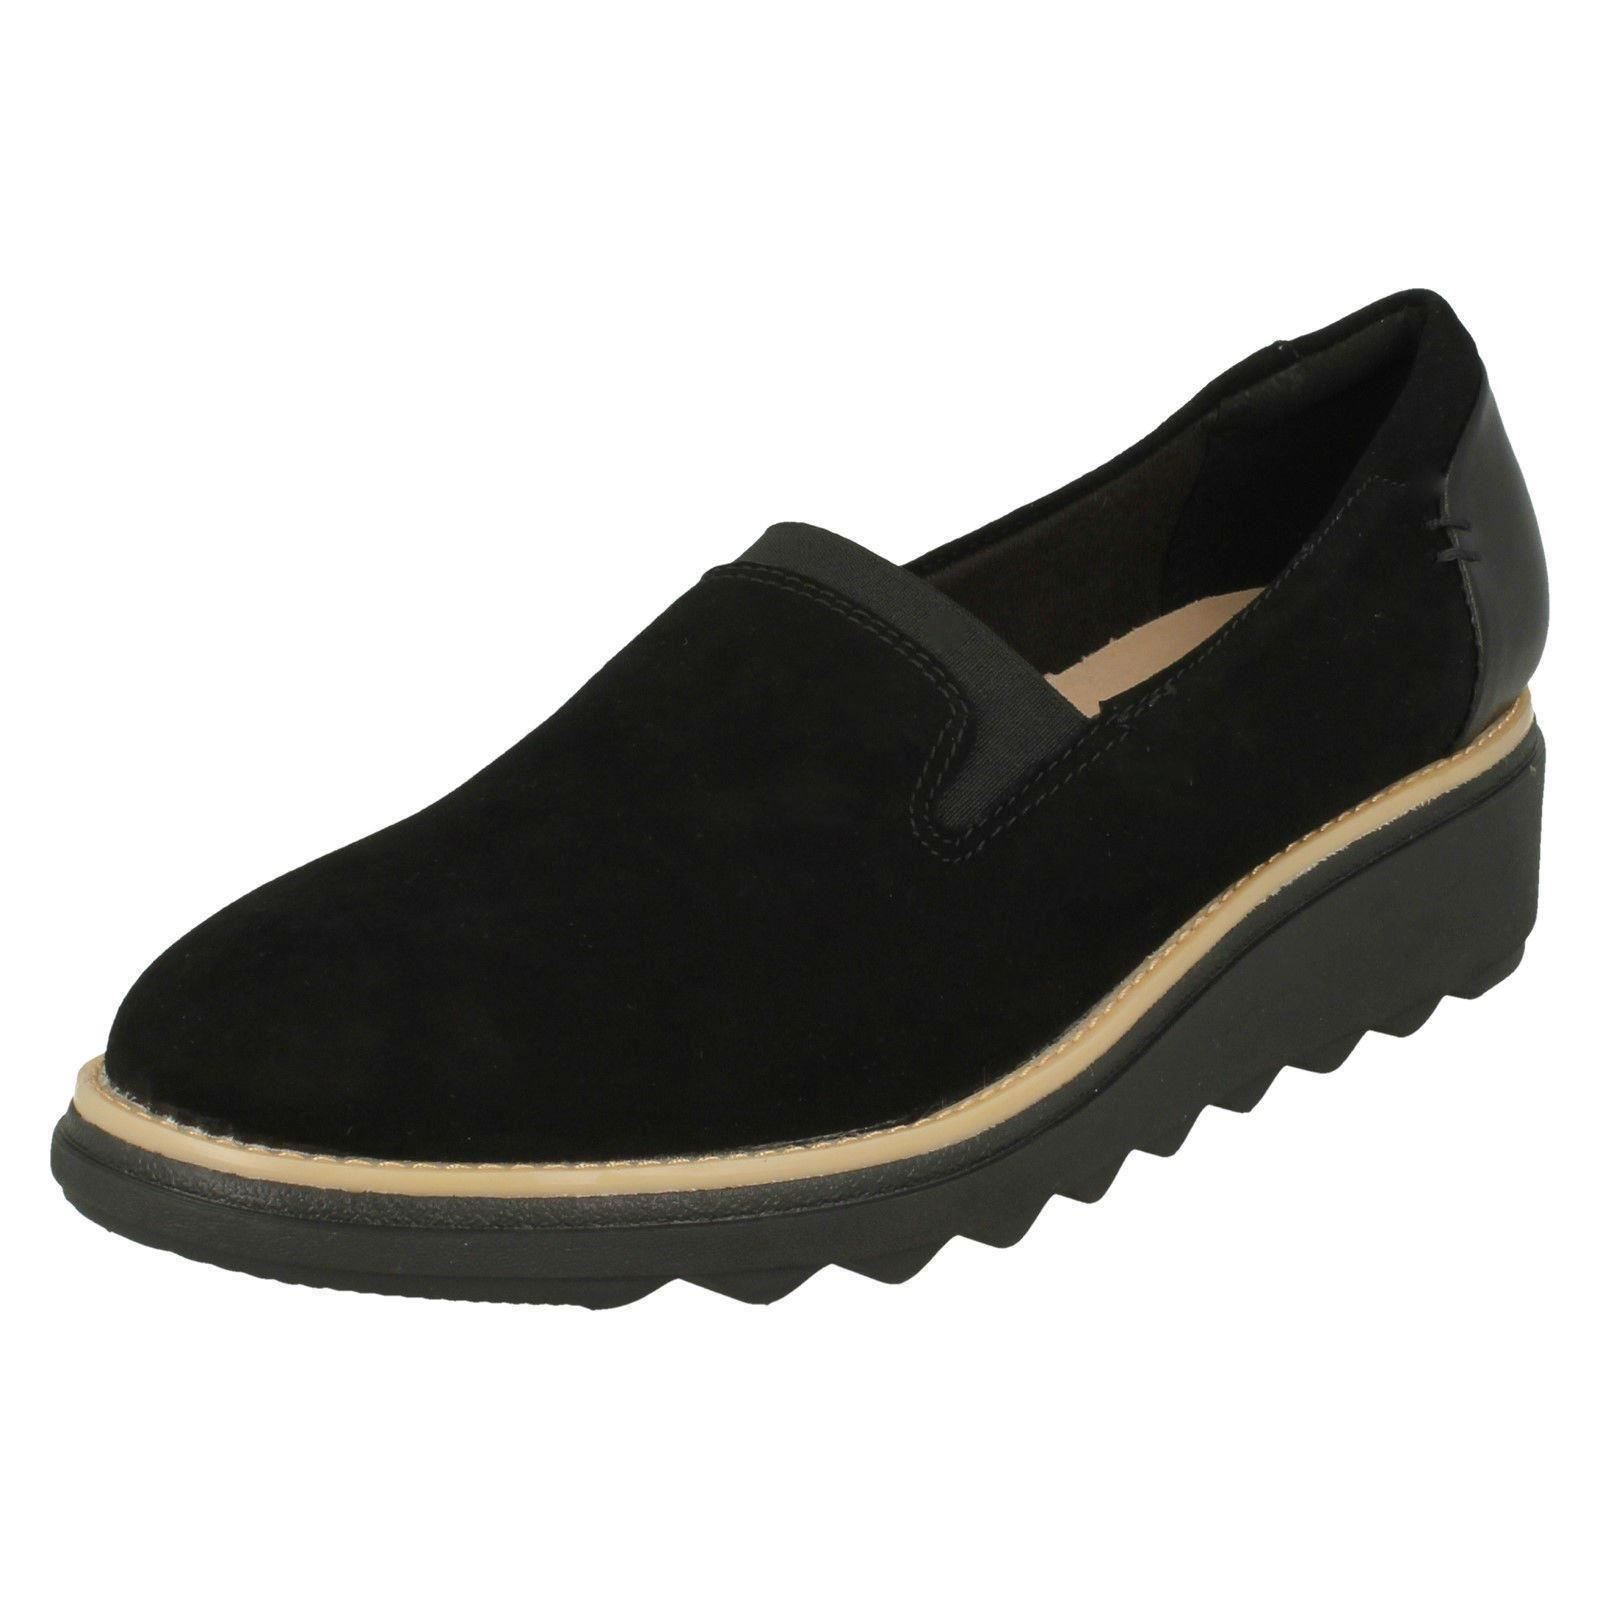 ae0bfdd3f1f Details about Ladies Clarks Slip On Smart Suede Leather Shoes -  Sharon  Dolly